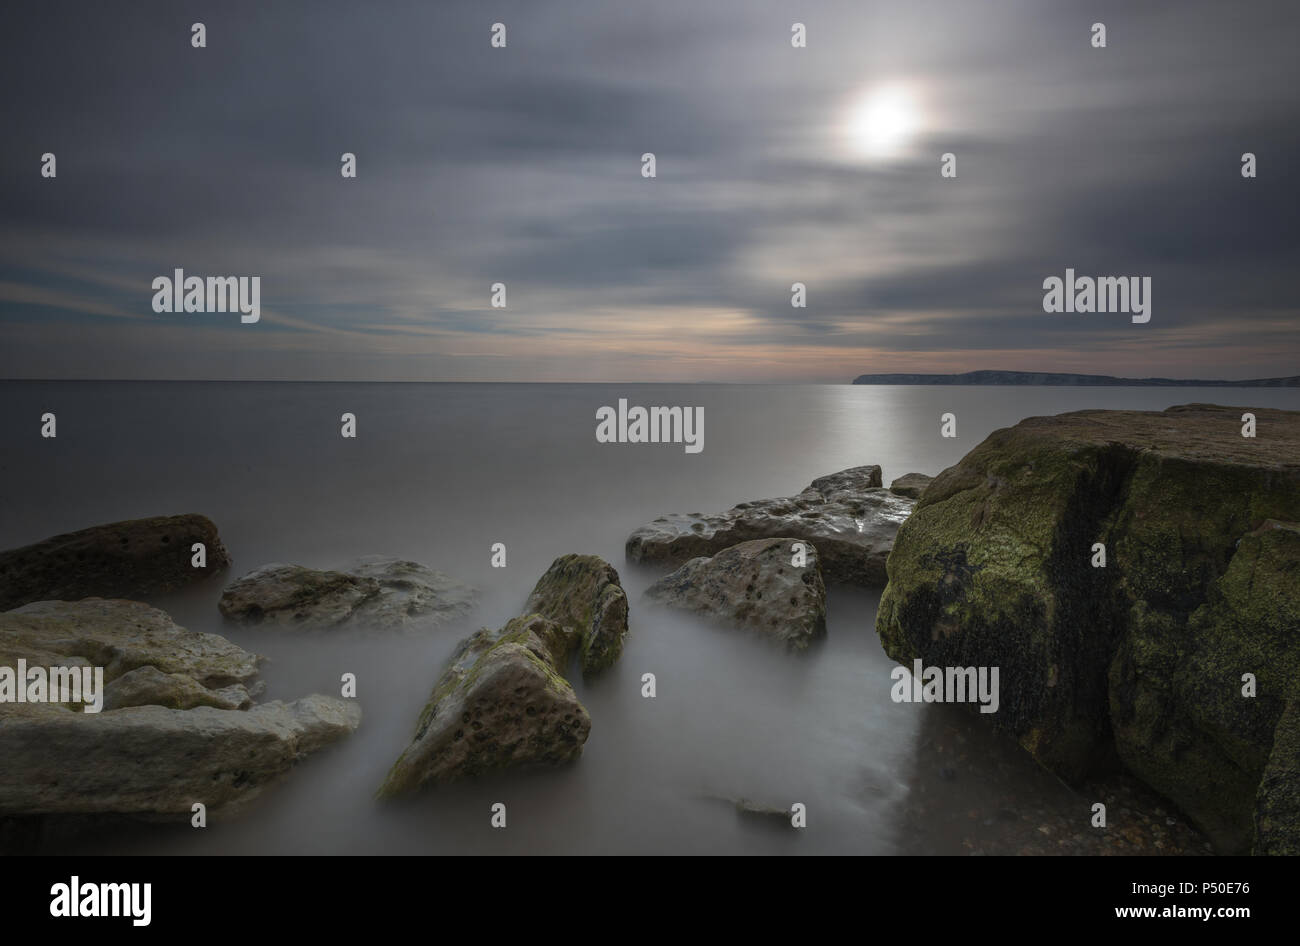 a beautiful and atmospheric isle of wight seascape or sunset over the sea at compton bay near freshwater bay.. - Stock Image